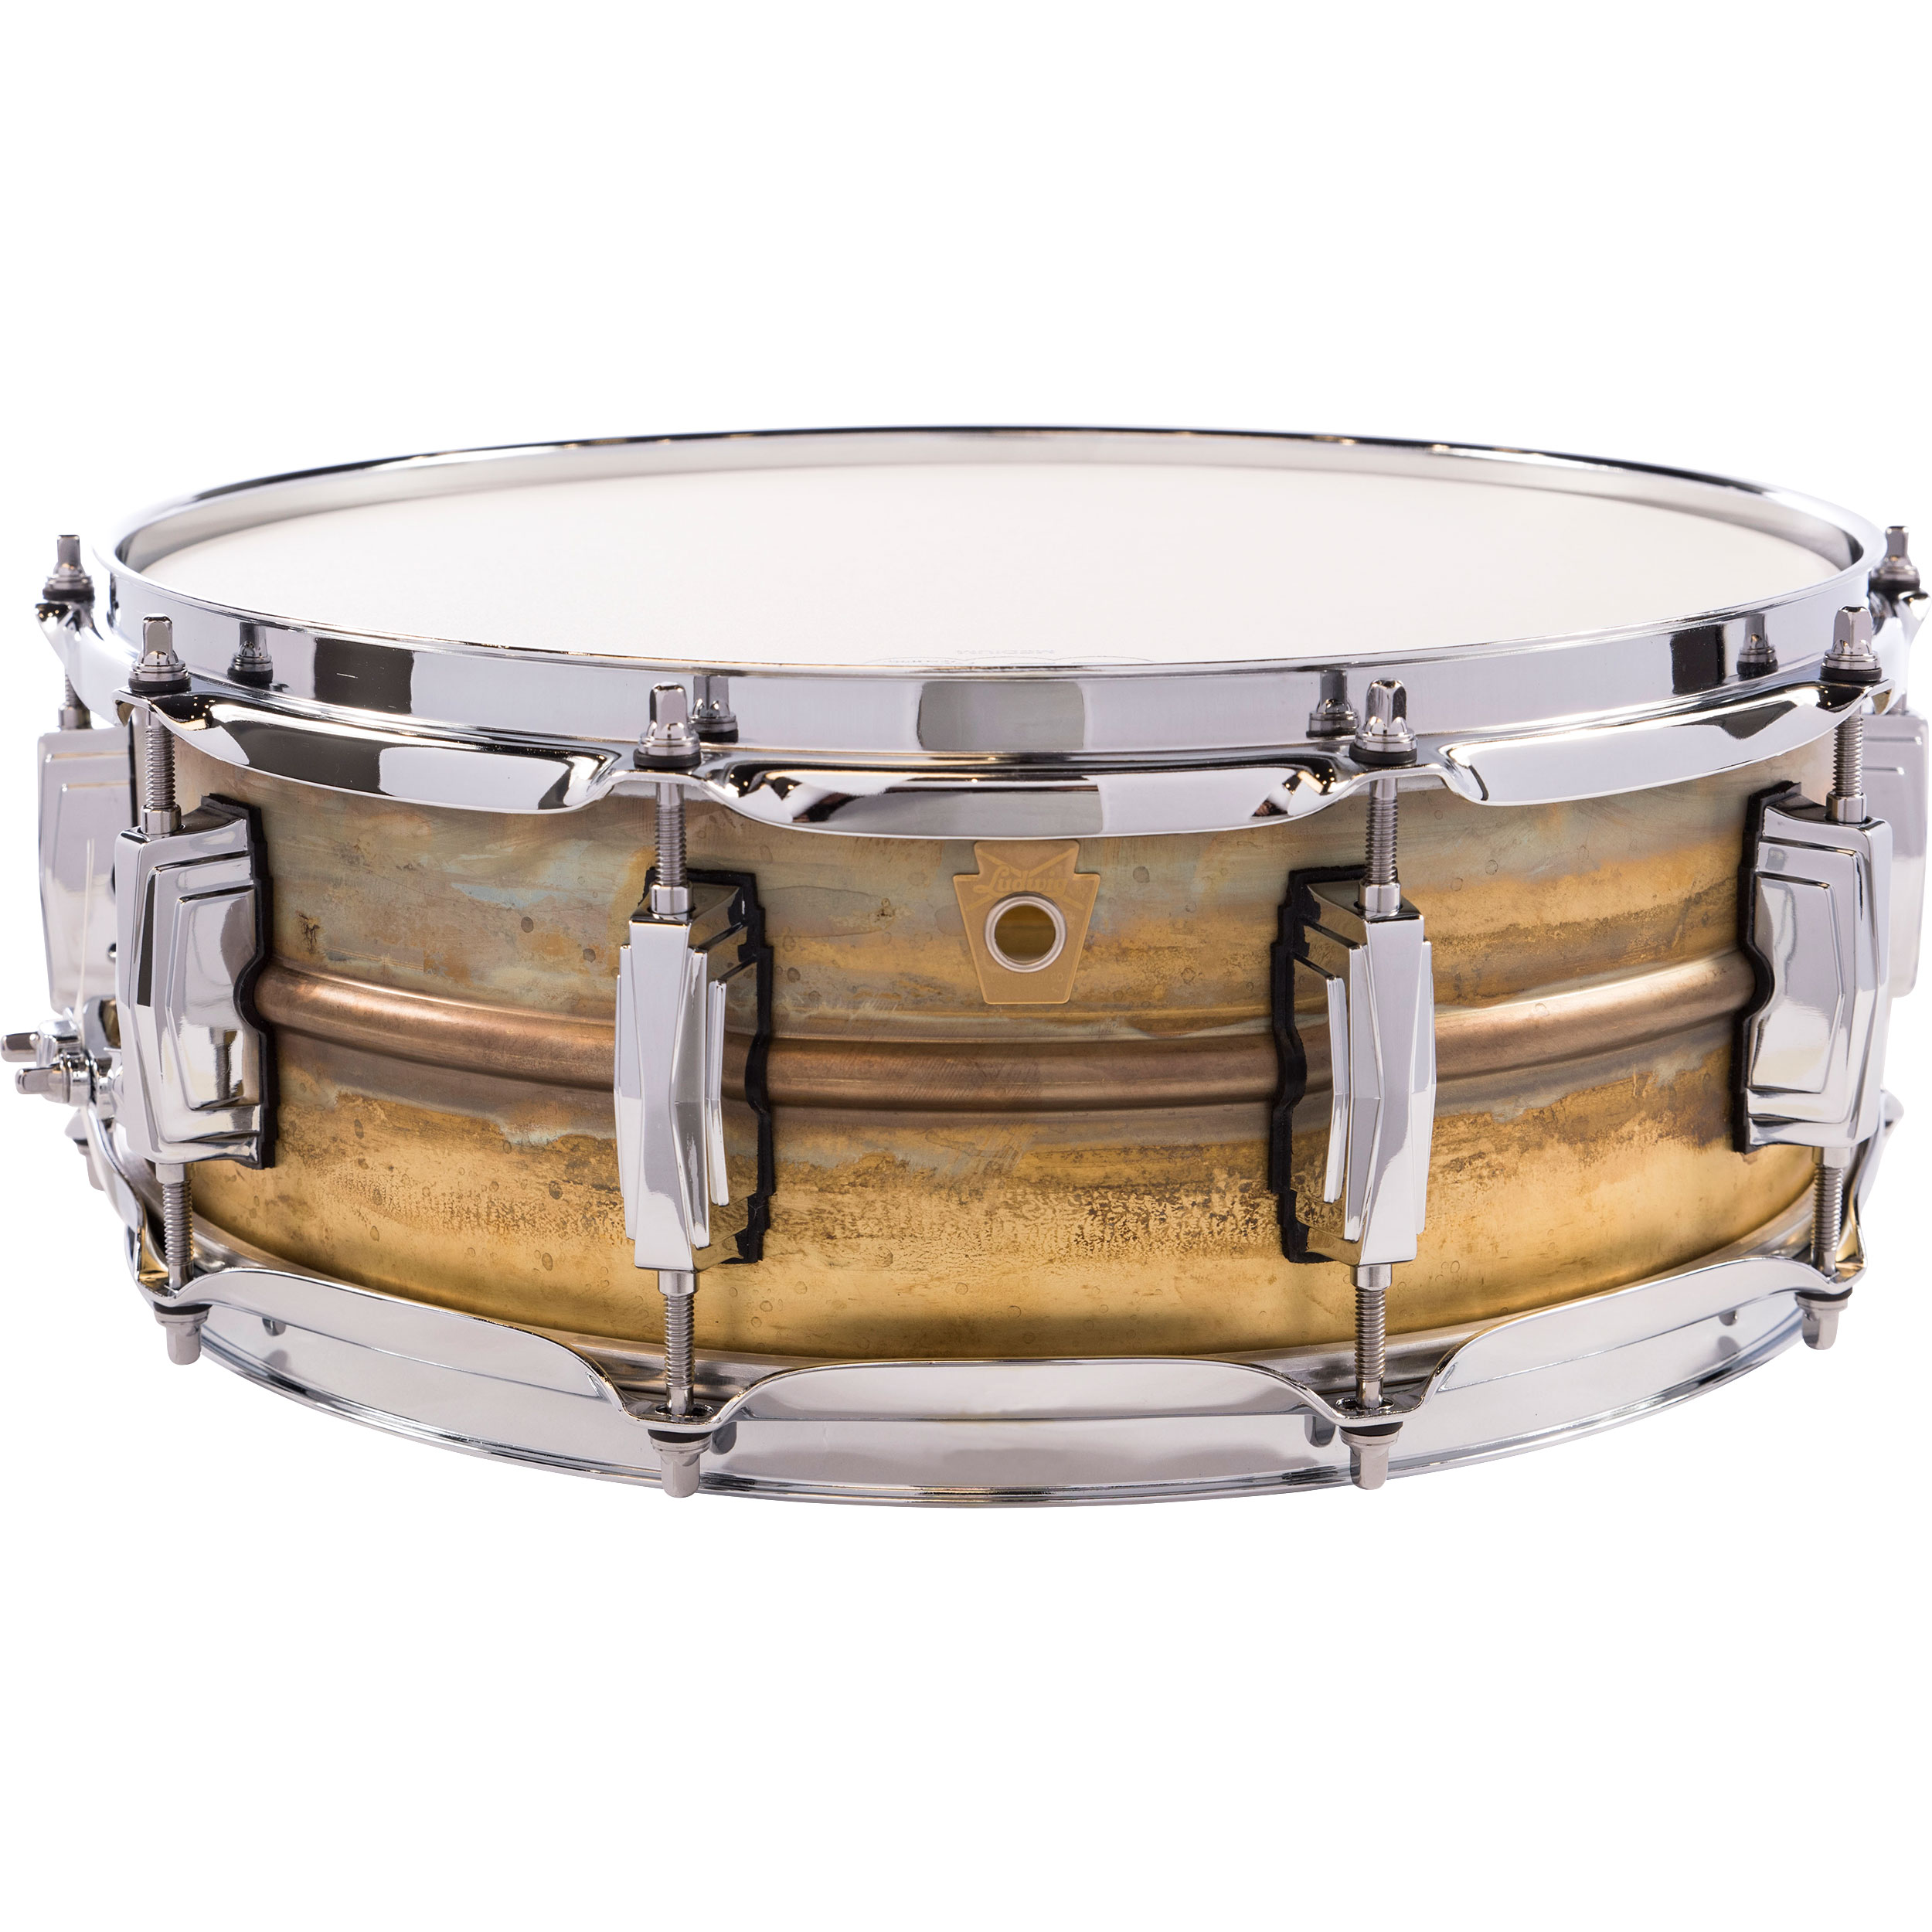 "Ludwig 5"" x 14"" Raw Brass Snare Drum"